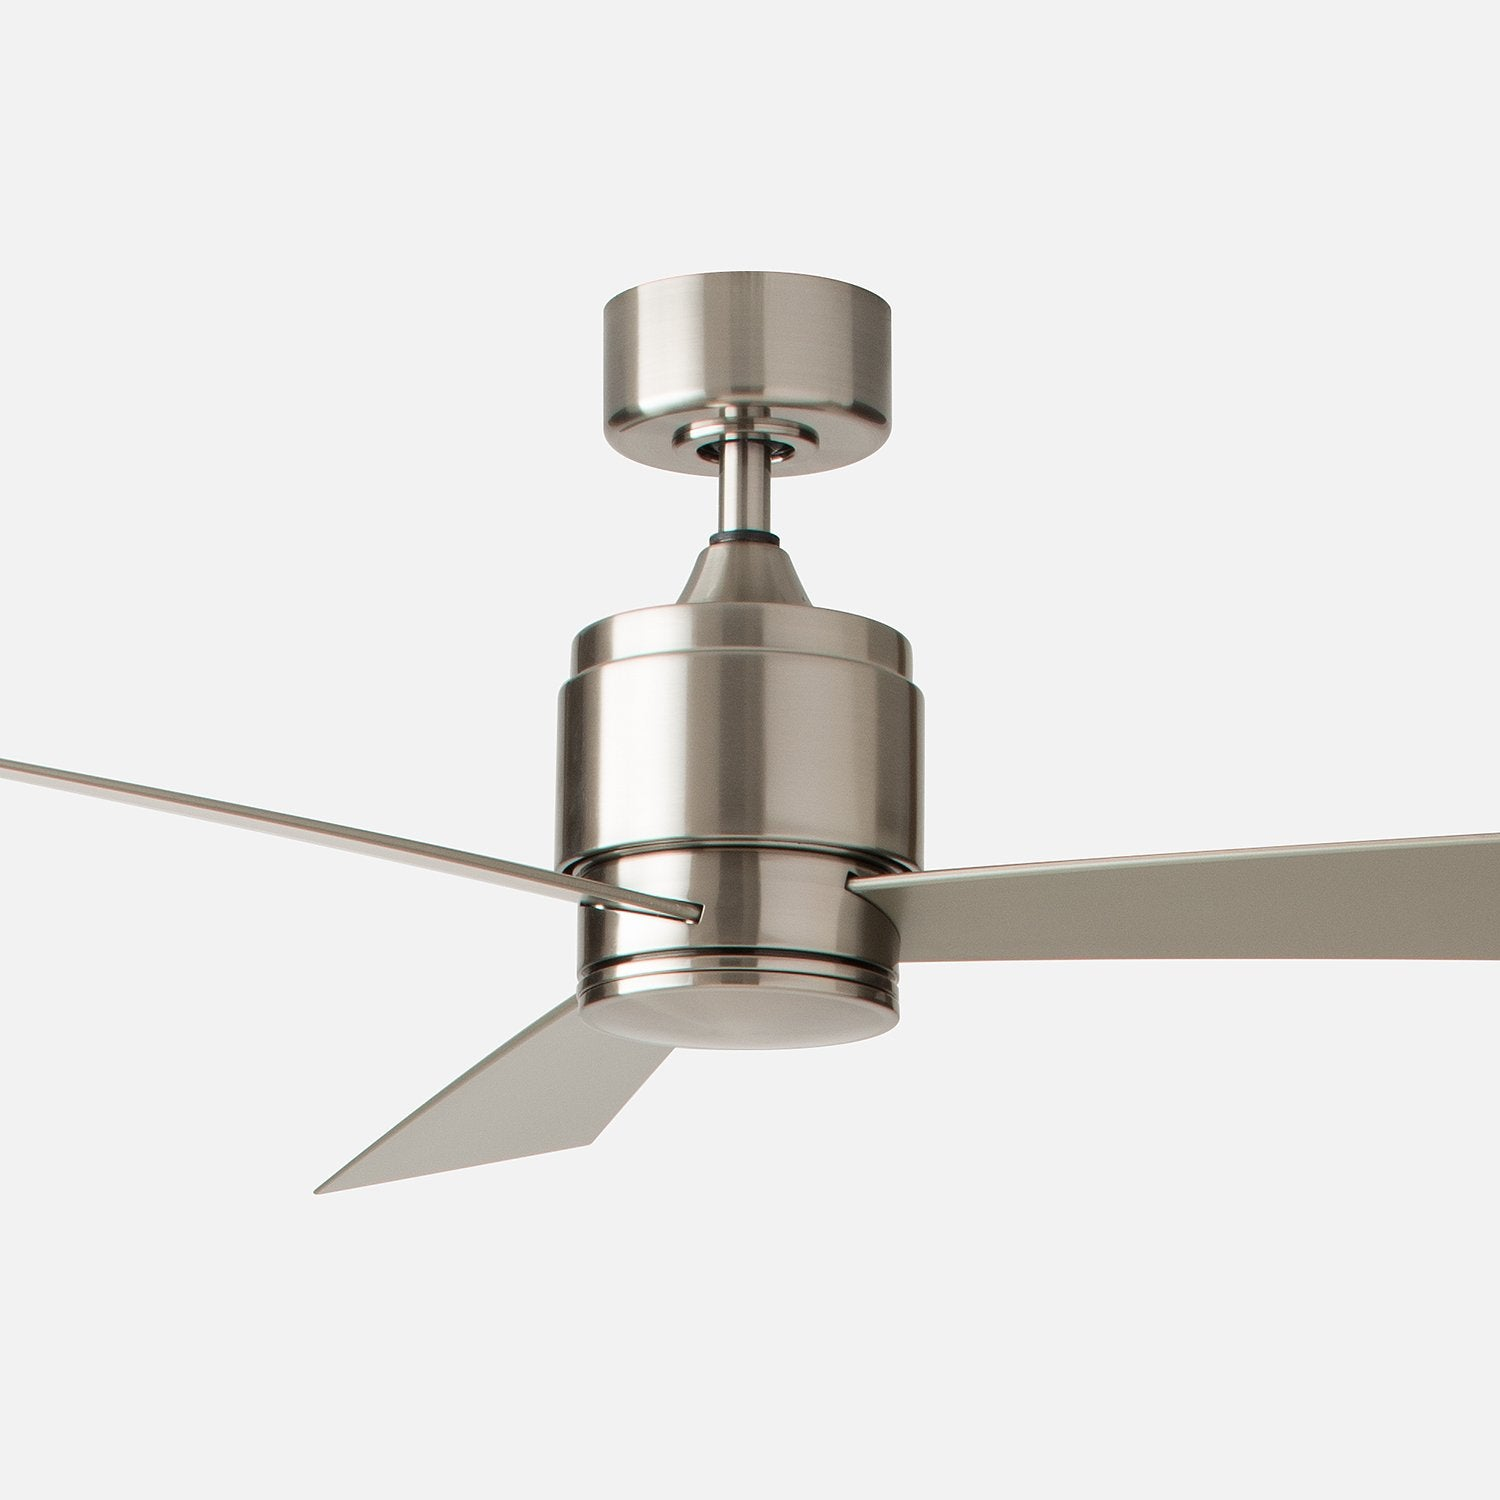 Zonix 52 led ceiling fan brushed nickel schoolhouse zonix 52 aloadofball Choice Image